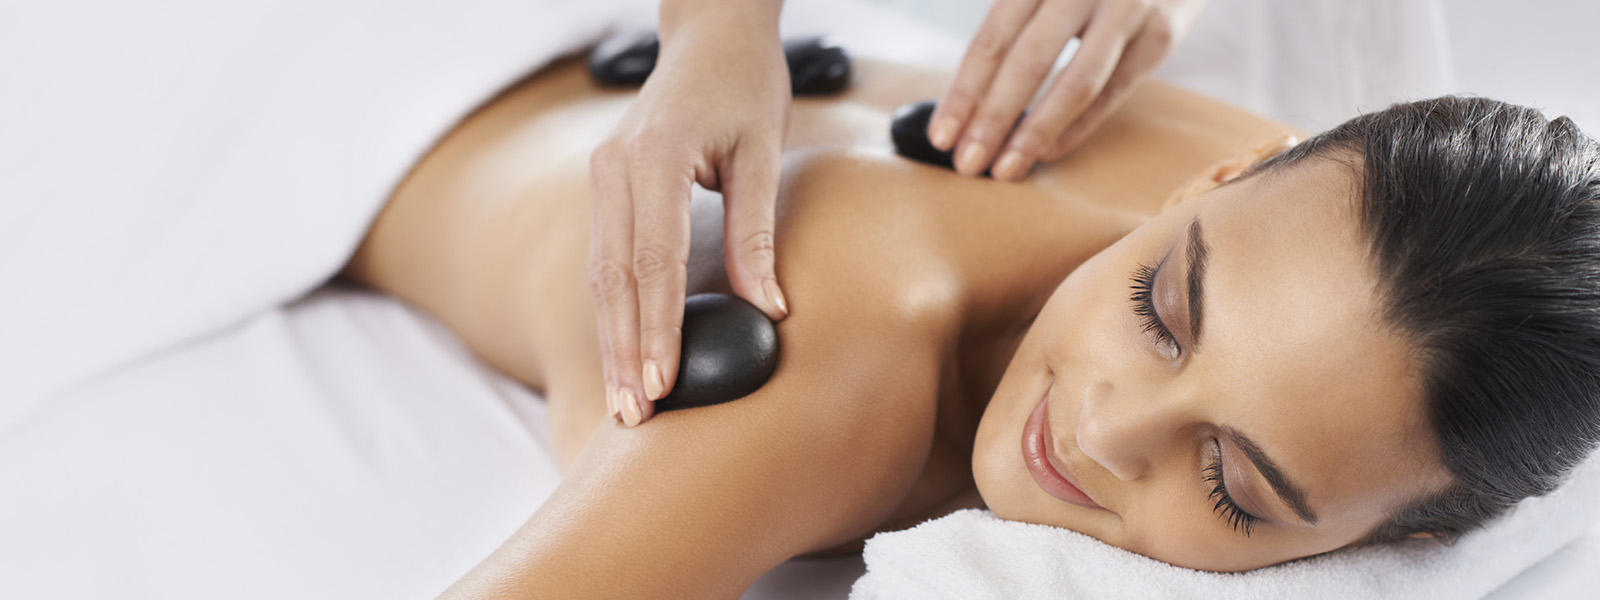 Combat The Winter Chill With A Hot Stone Massage-6567